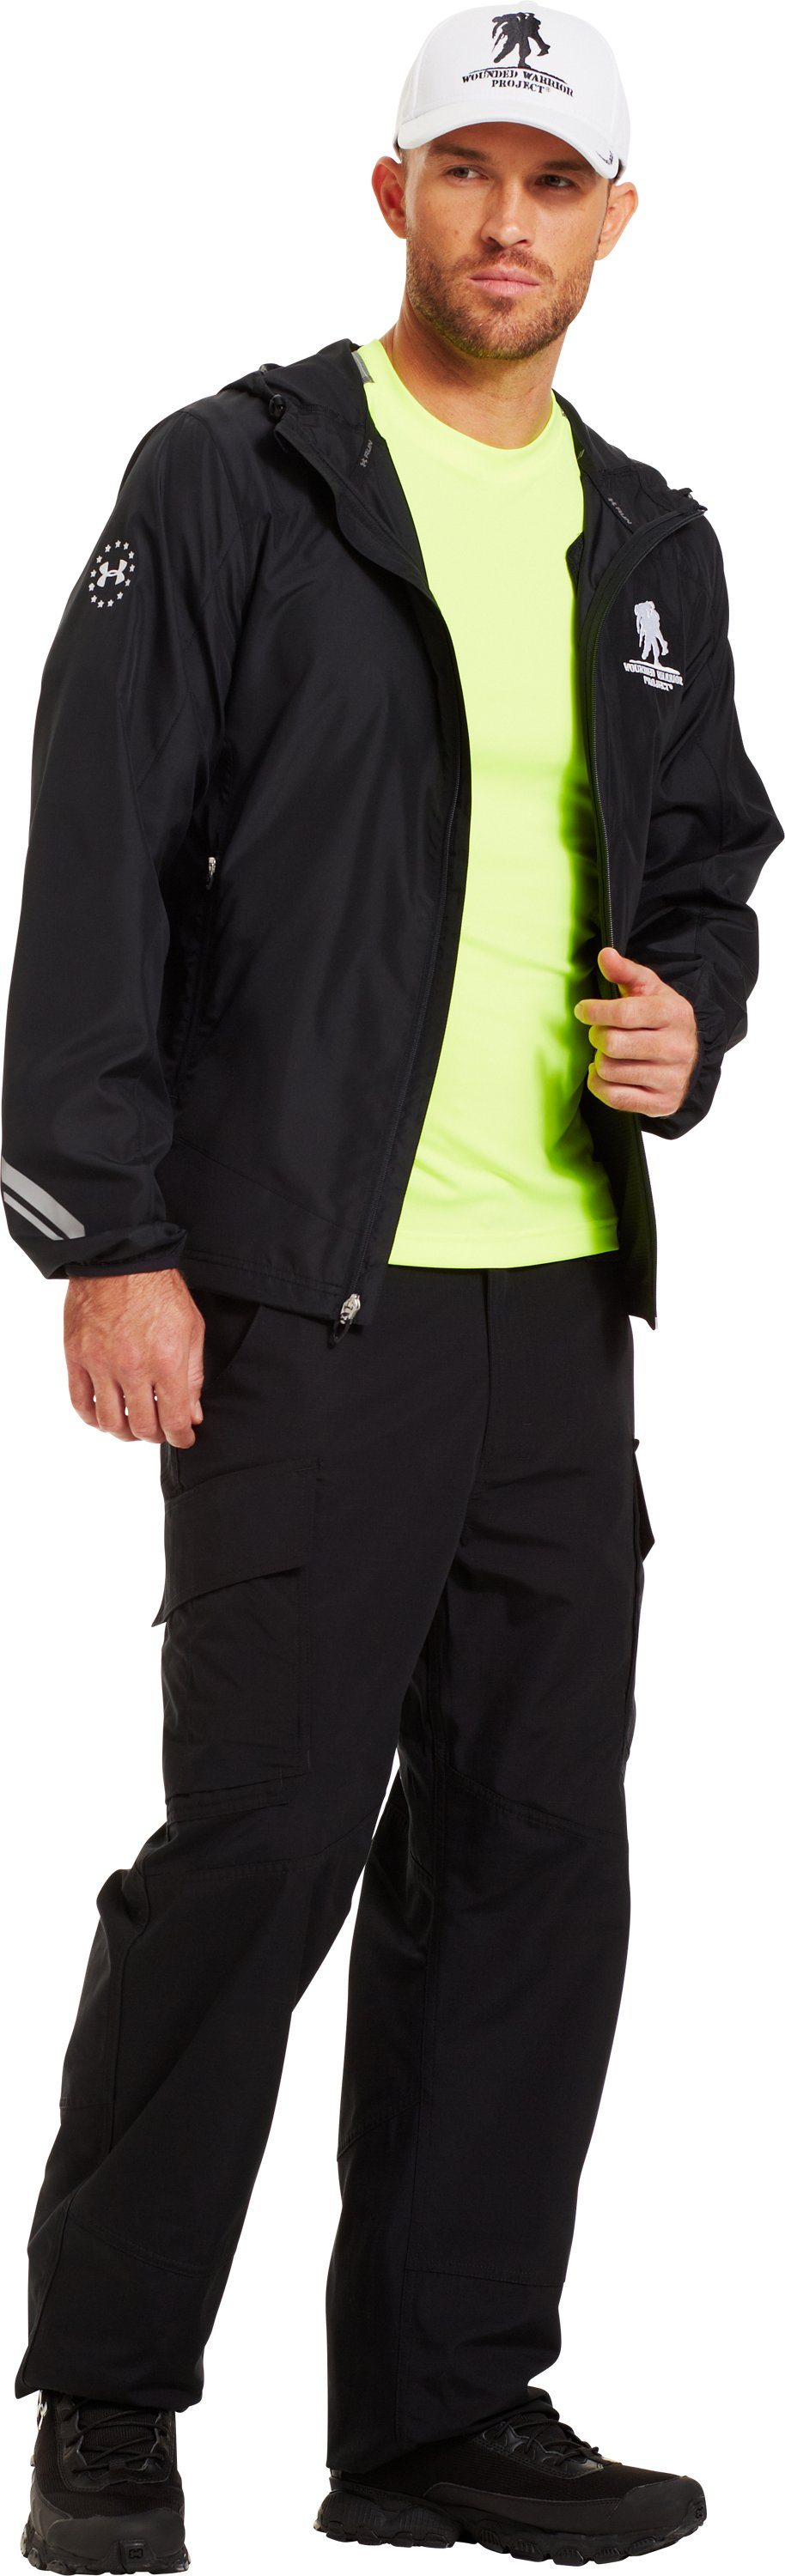 Men's WWP UA Run Jacket, Black